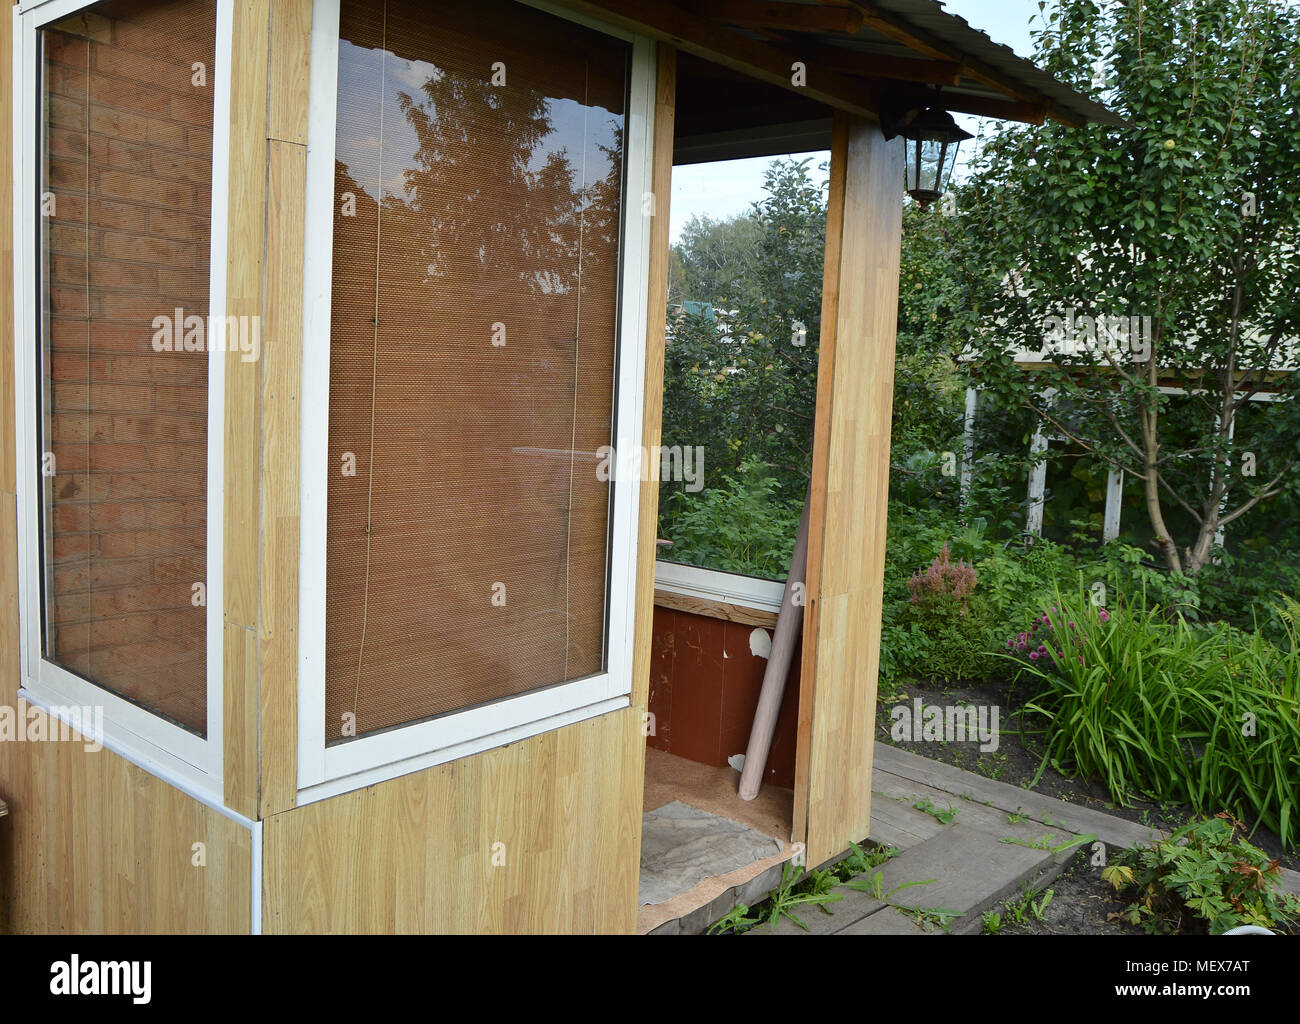 Glass doors and Windows in a wooden veranda. Entrance to the country house Stock Photo